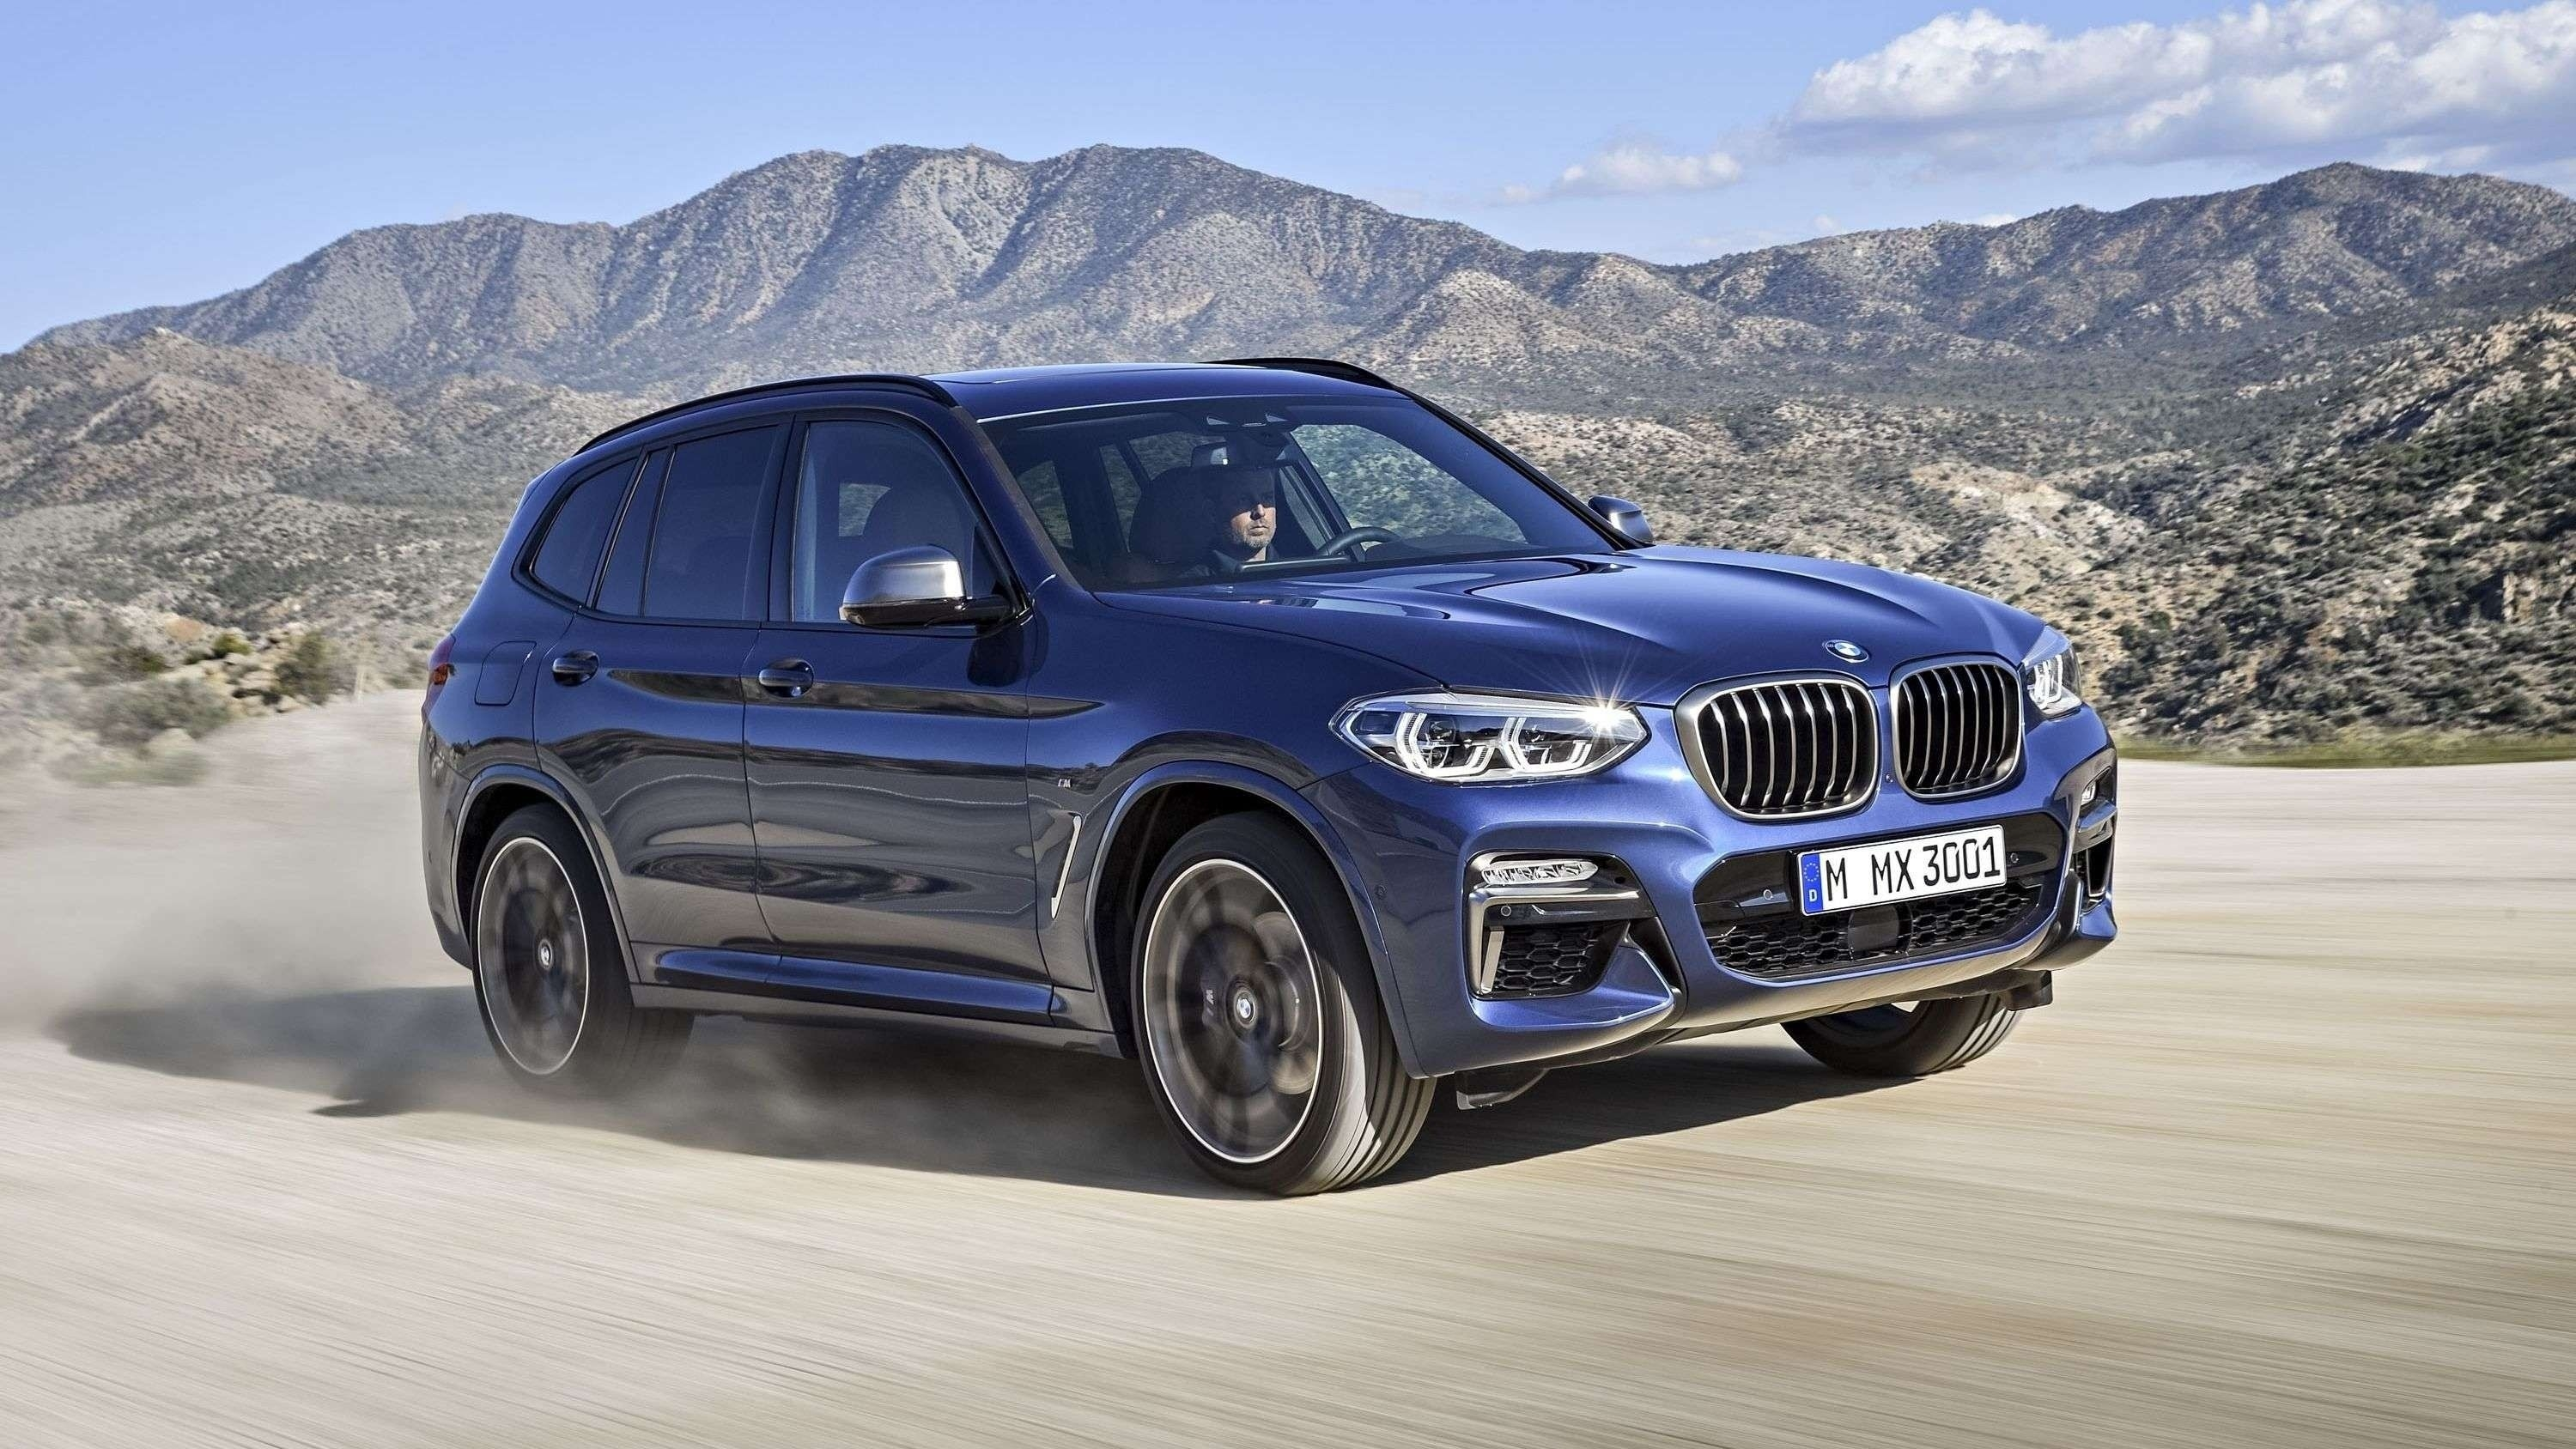 94 The 2020 BMW X4ss Price and Review